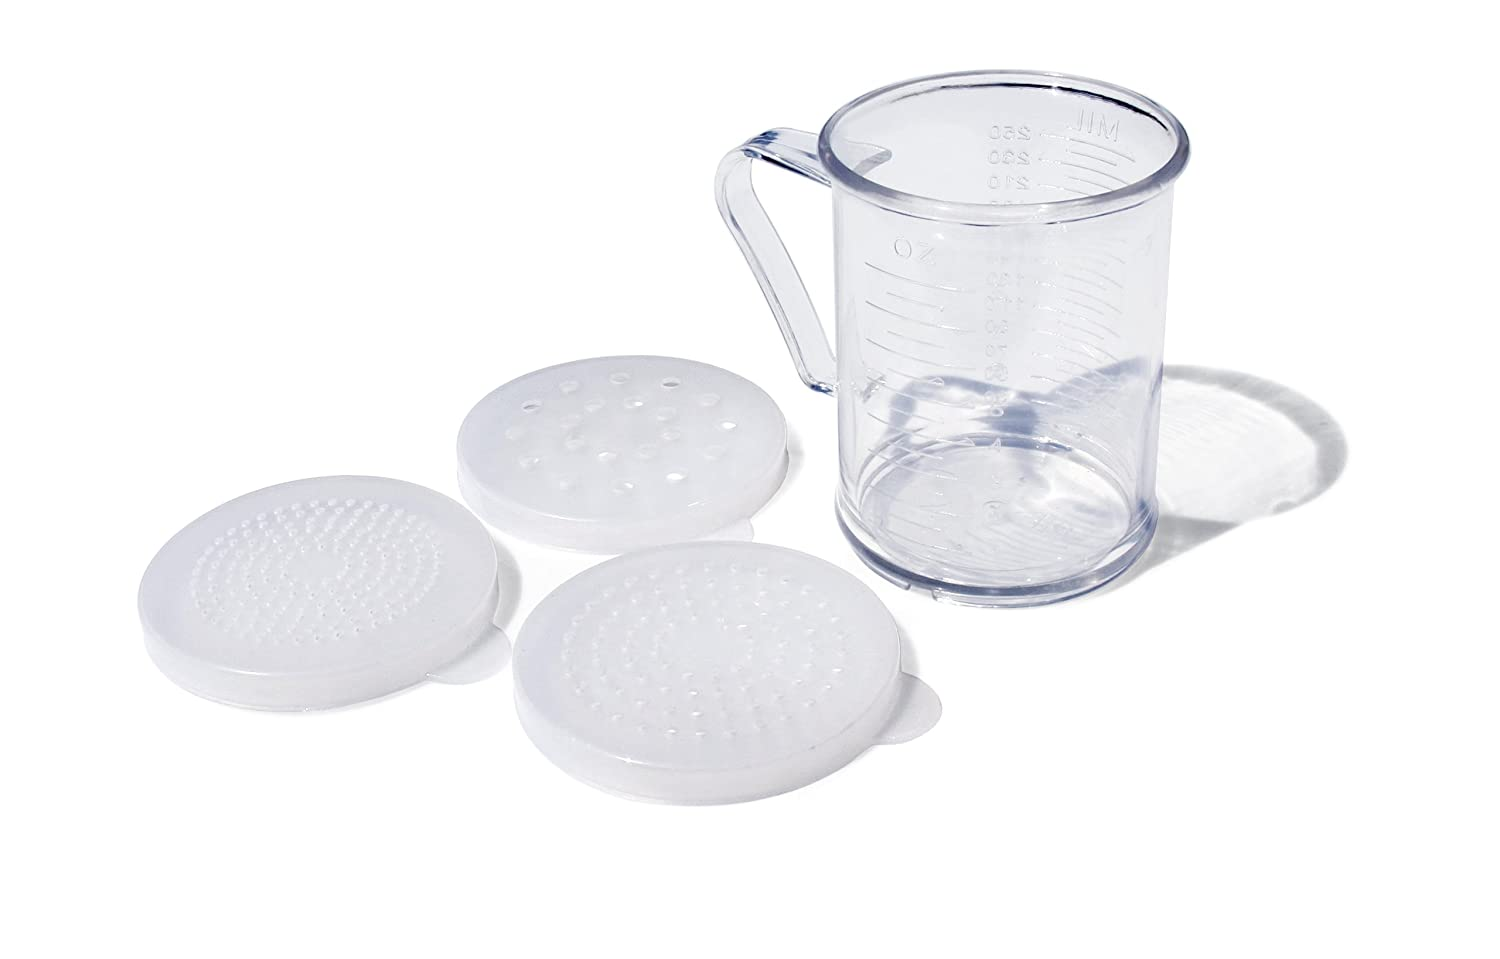 New Star Foodservice 22513 Polycarbonate Dredge Shaker with 3 Lids, 10-Ounce, Clear